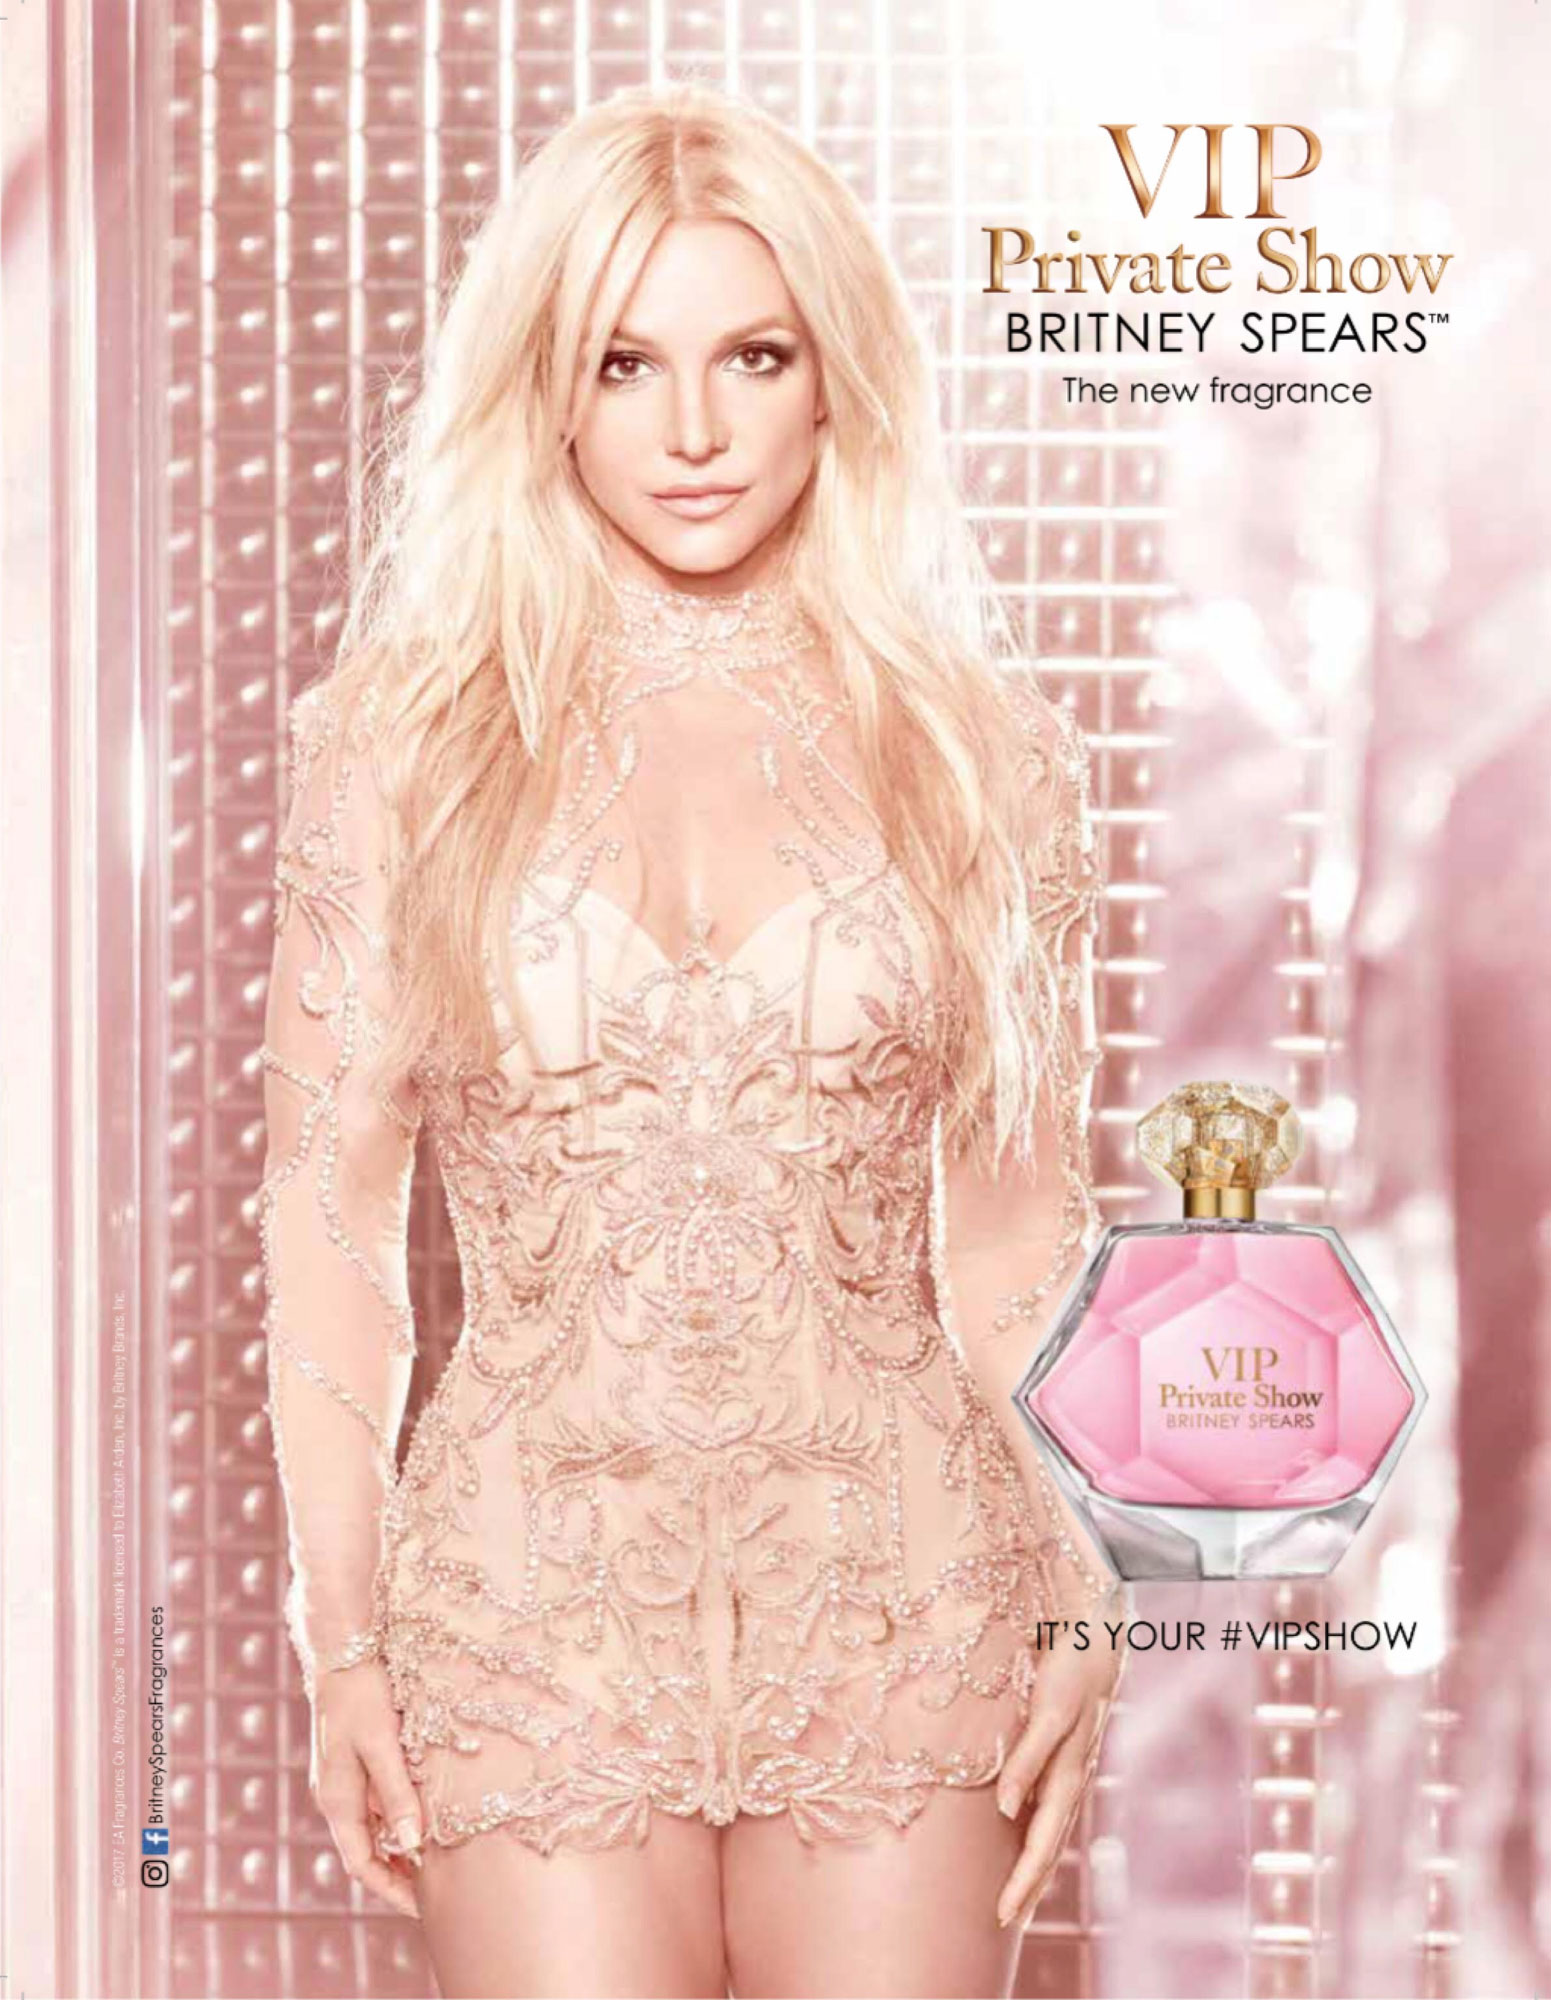 Britney Spears VIP Private Show ad